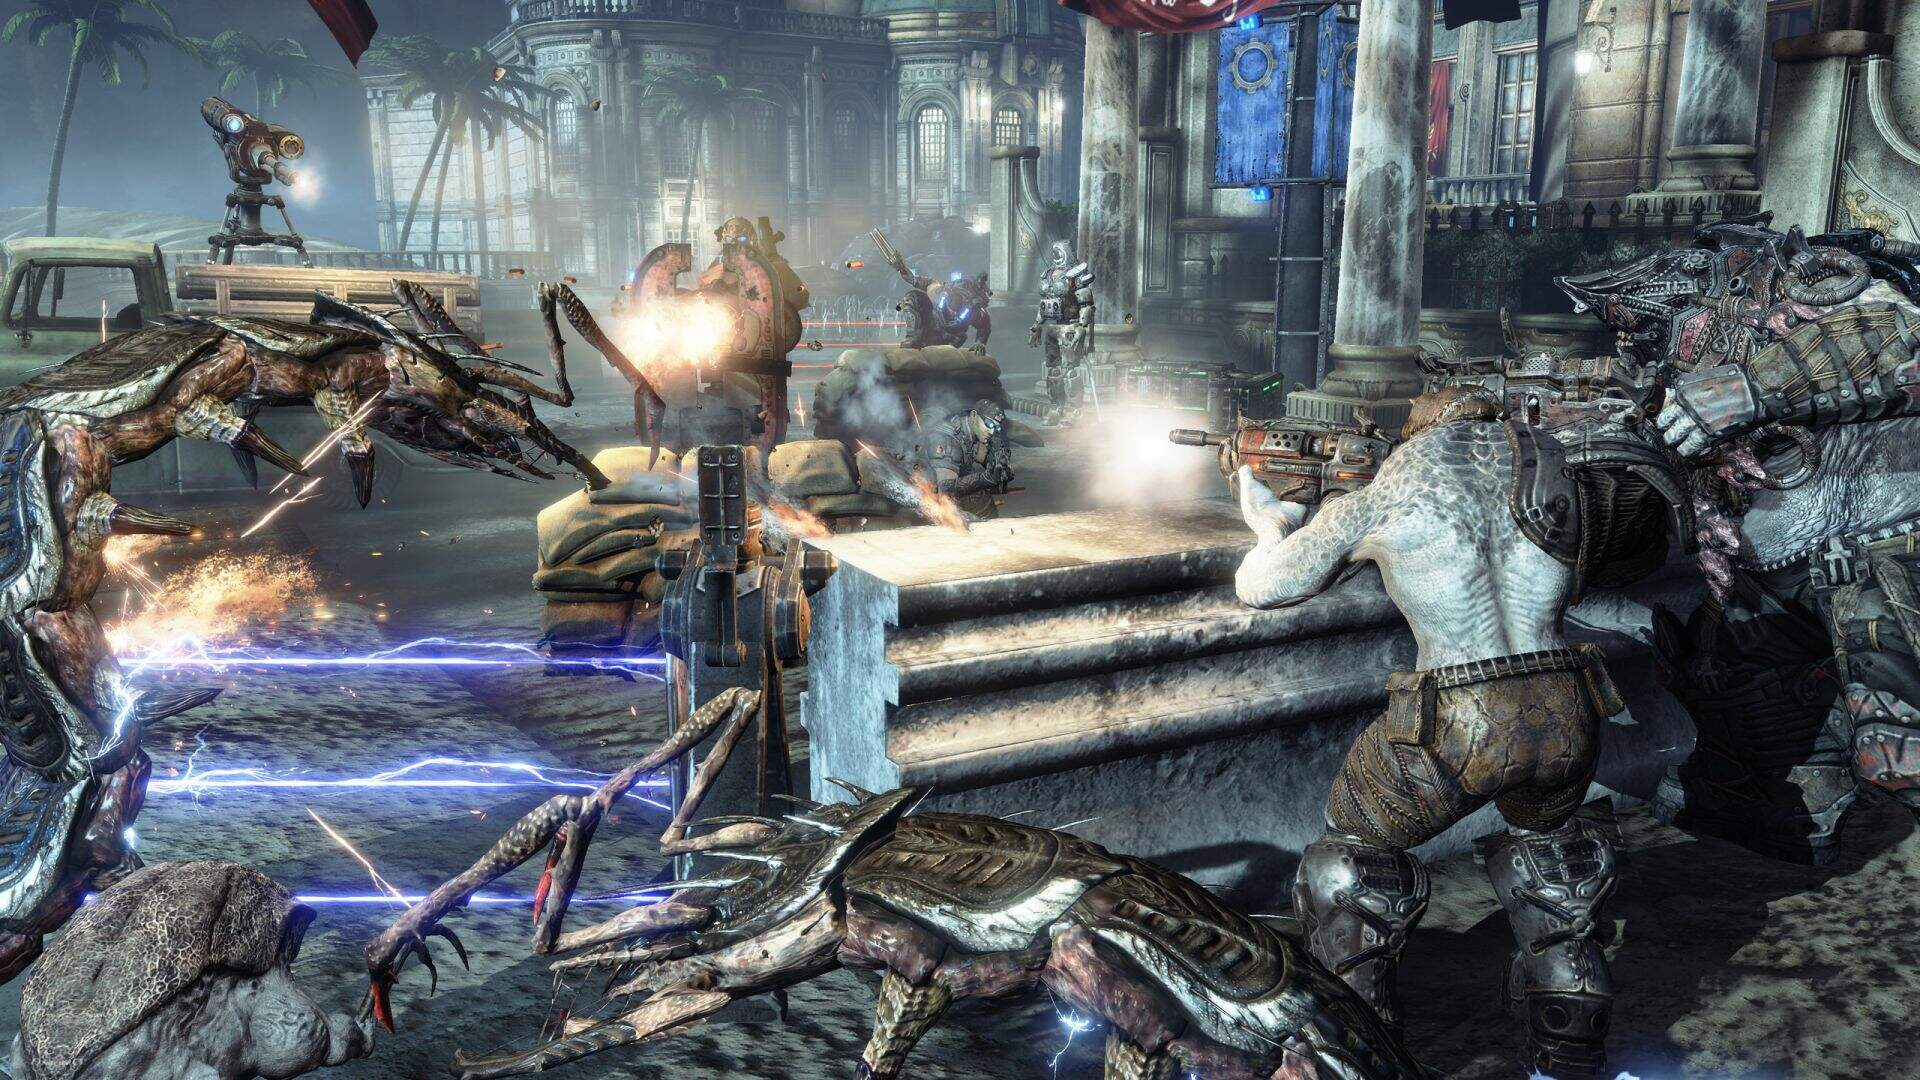 Gears of War 3 Footage Reportedly Running on PS3 Surfaces [Update]